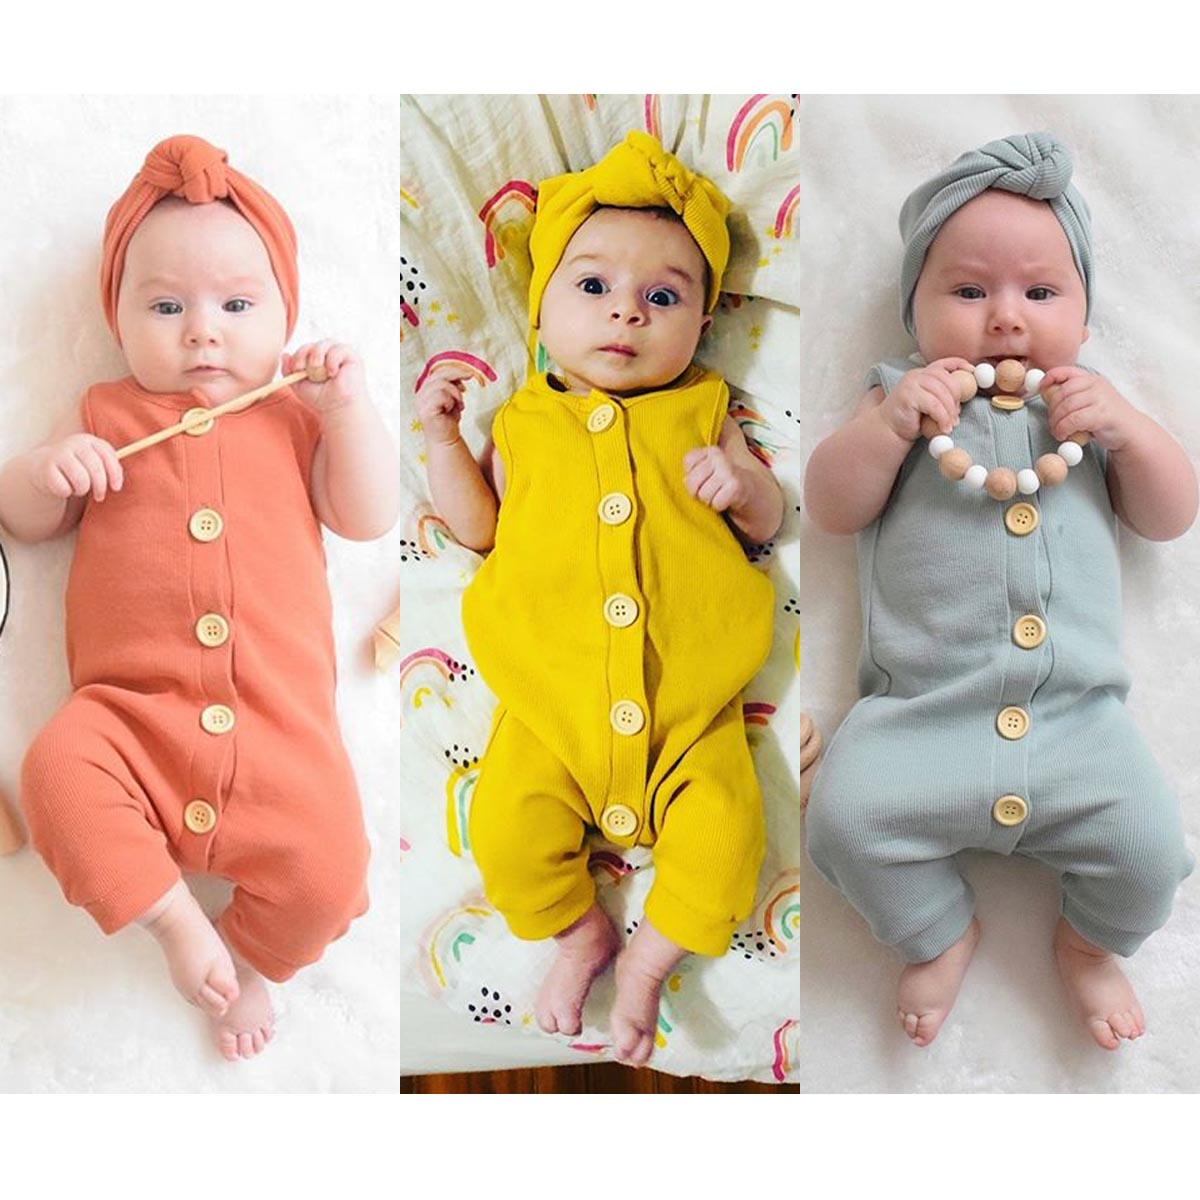 HTB1.0kNOYPpK1RjSZFFq6y5PpXai 2019 Summer Solid Rompers Newborn Infant Baby Girl Boy Outfit Cotton Romper Jumpsuit Bebe Kids Ropa Sleevless Casual Clothes Set